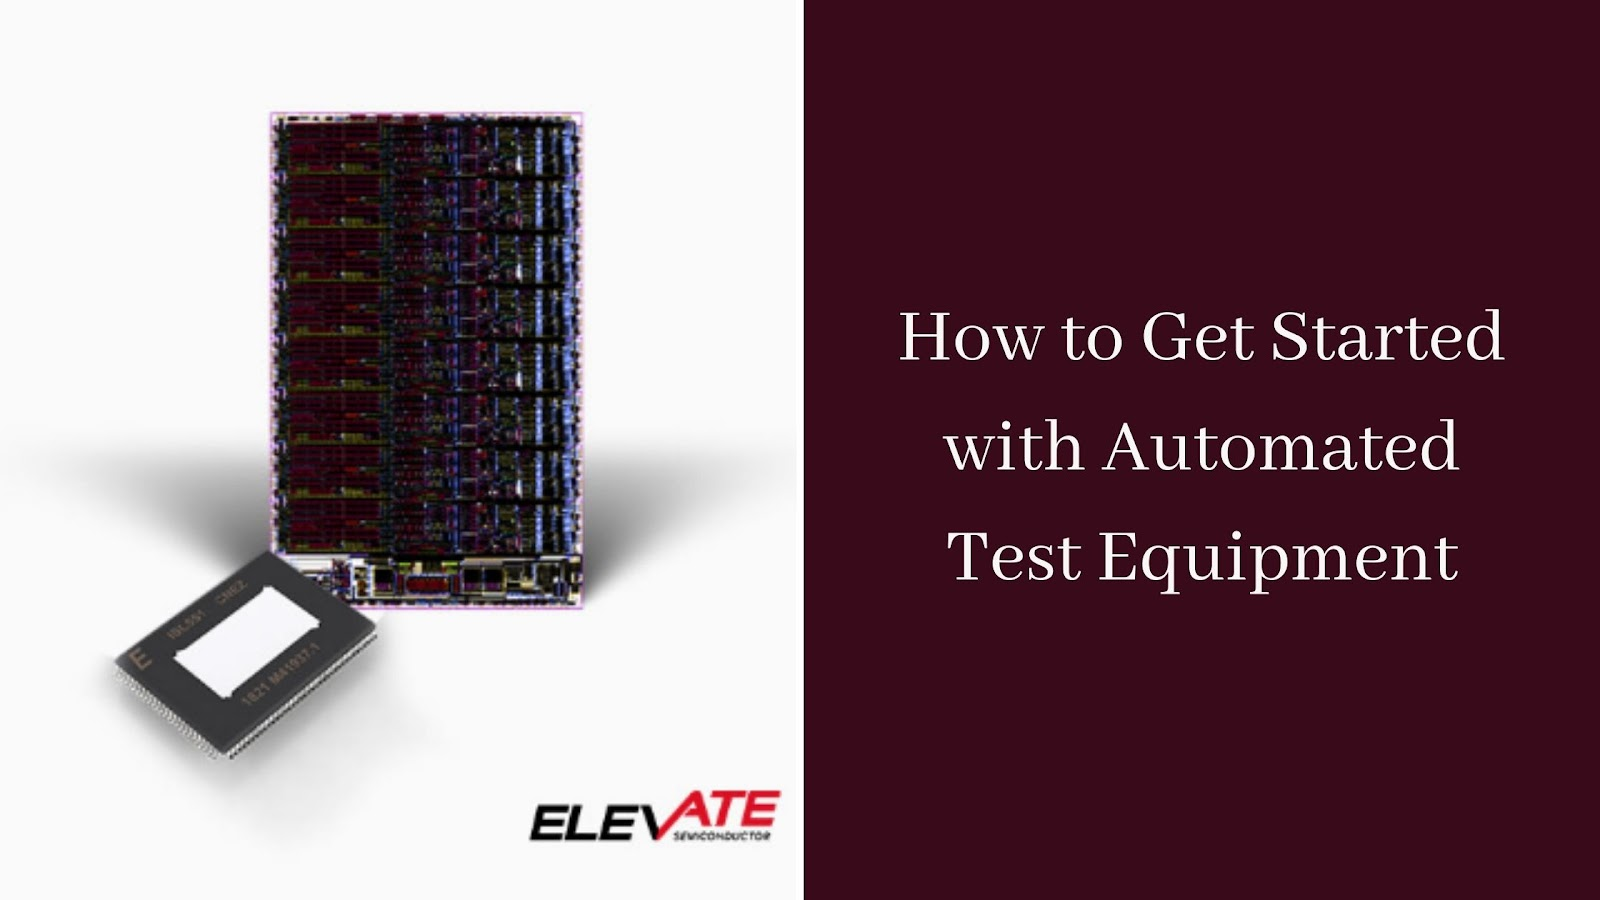 How to Get Started with Automated Test Equipment